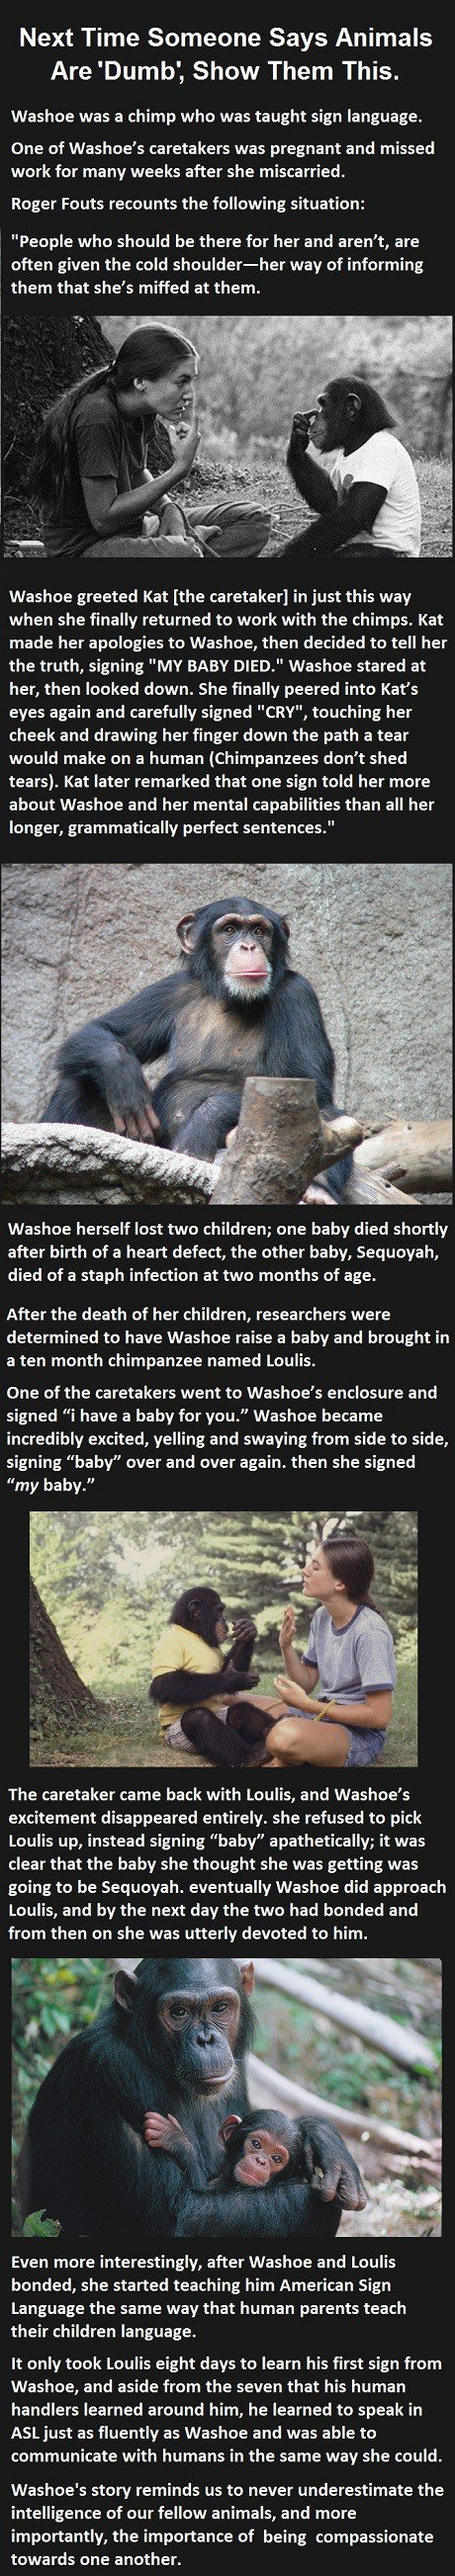 She Told The Chimp She Had A Miscarriage. Her Emotional Response Was Amazing.